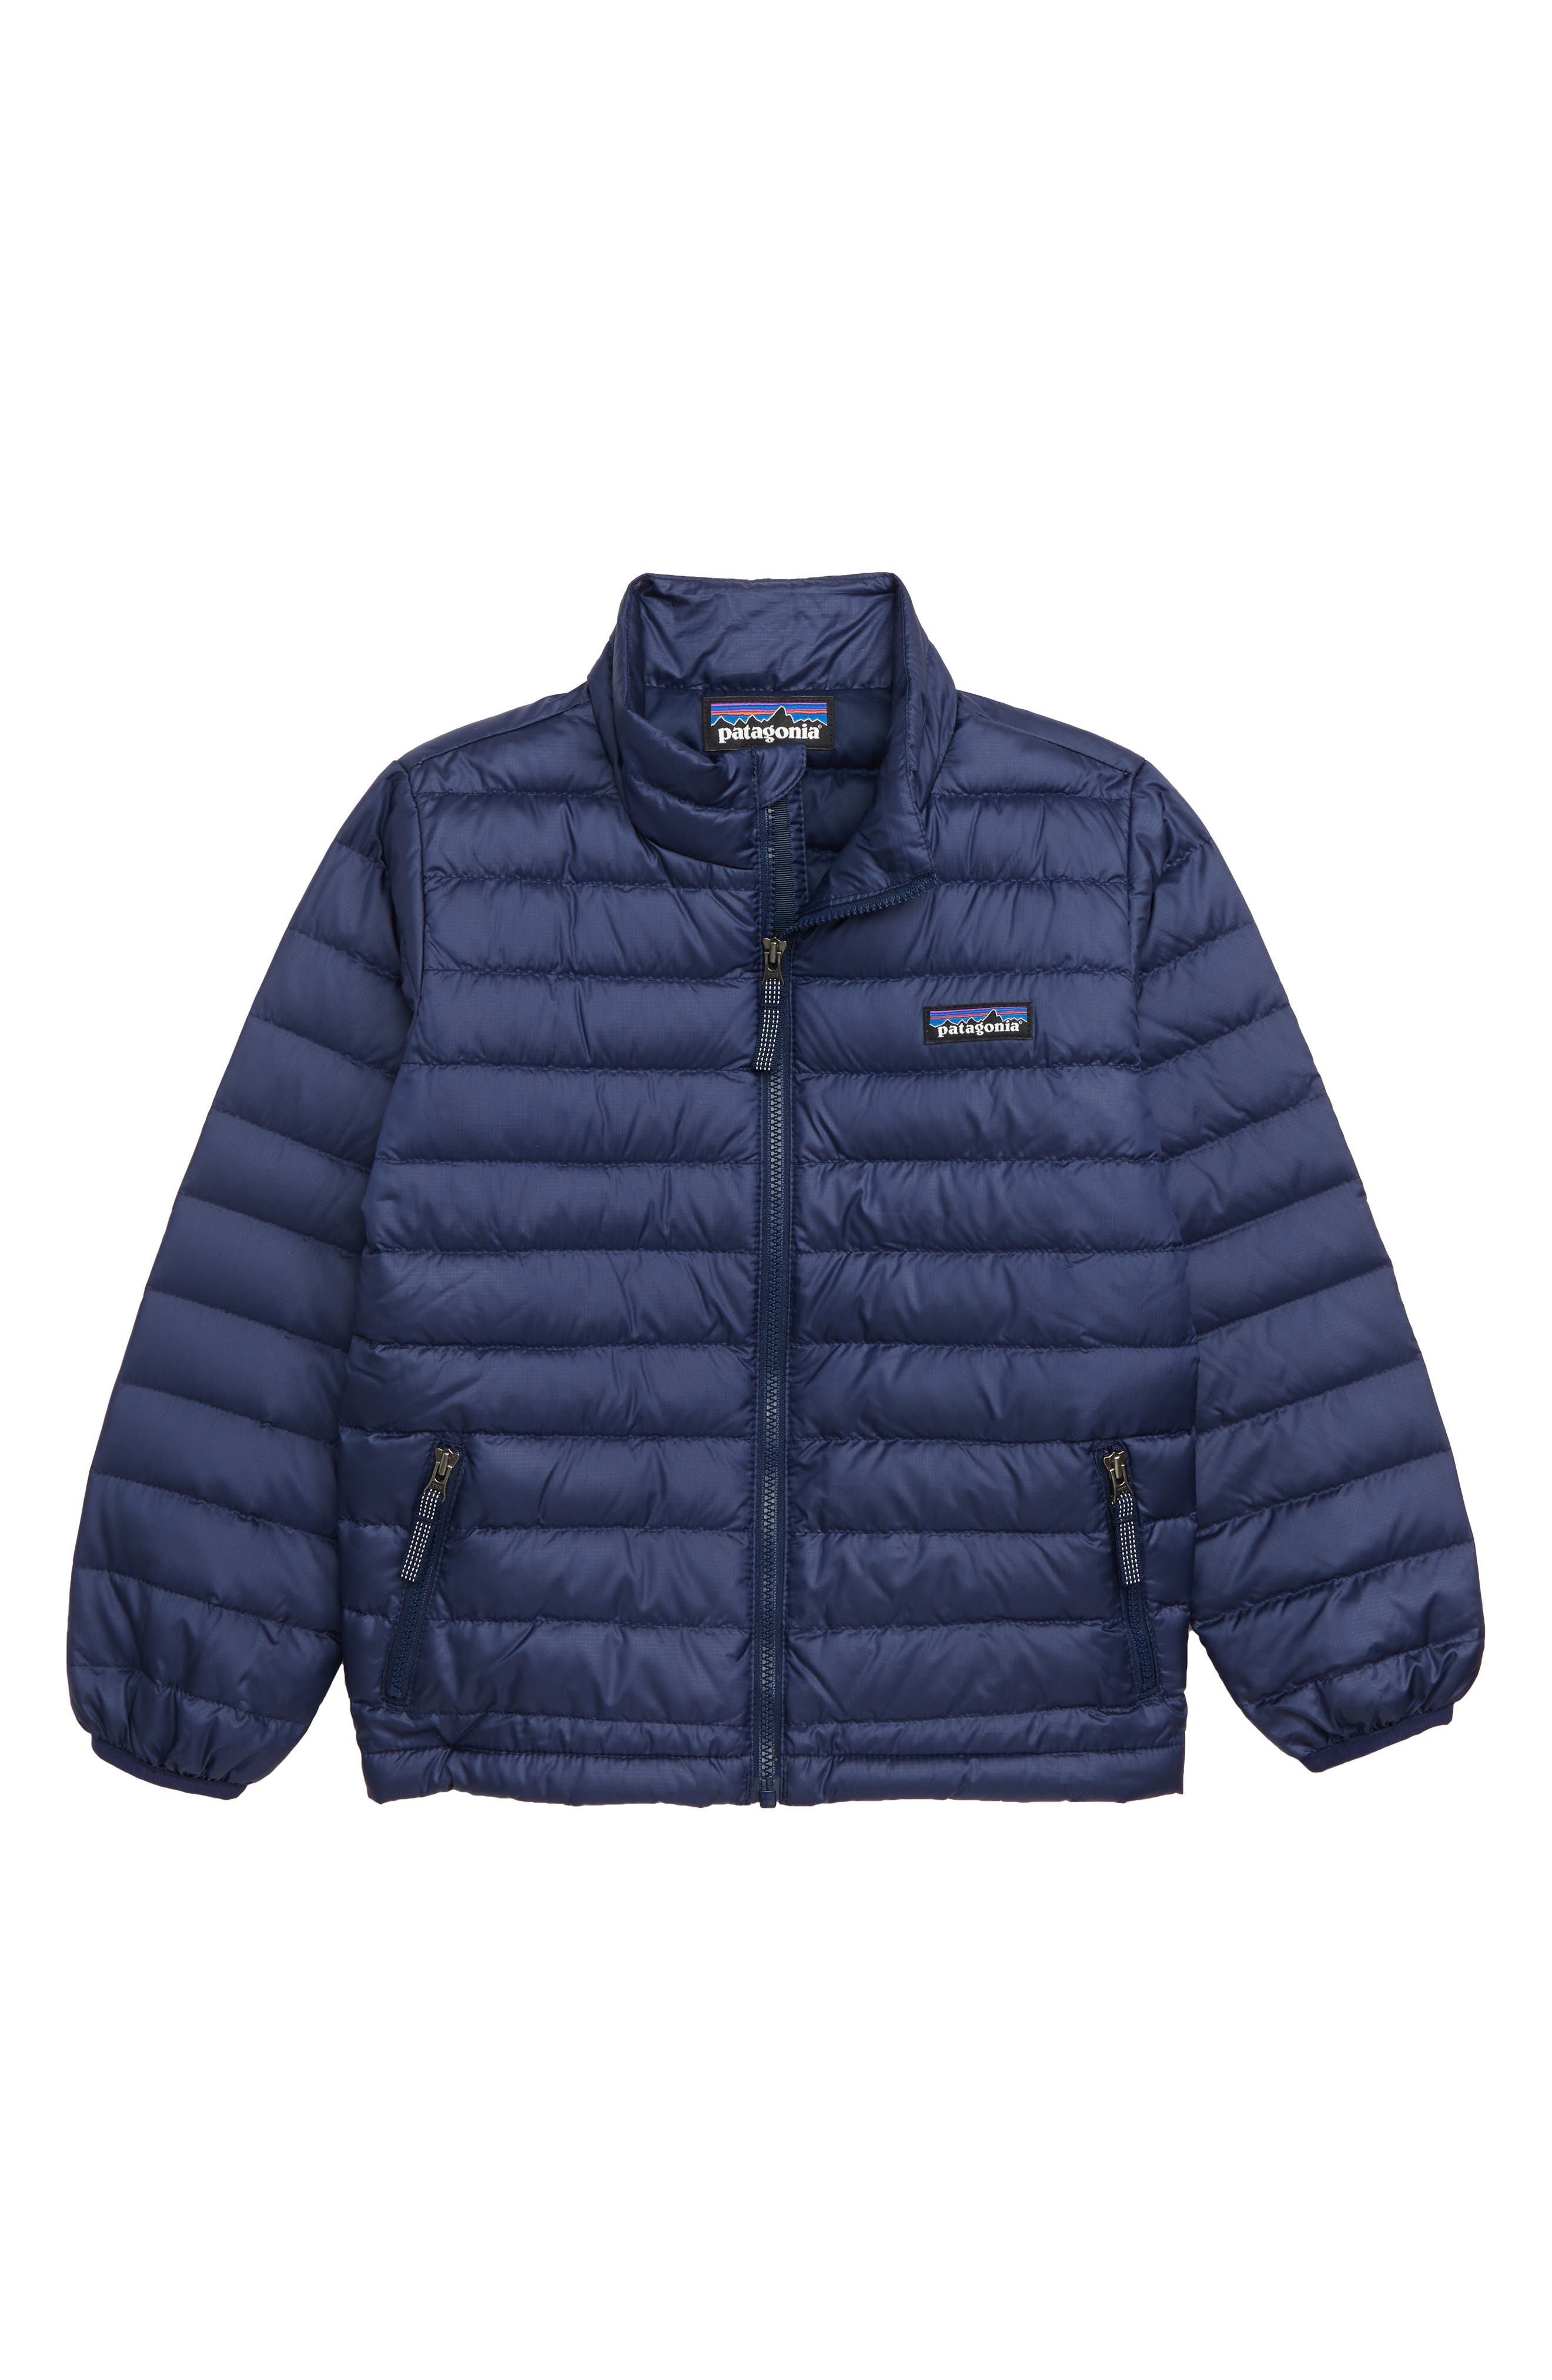 Toddler Boys Patagonia Water Repellent 600Fill Power Down Sweater Jacket Size 4T  Blue